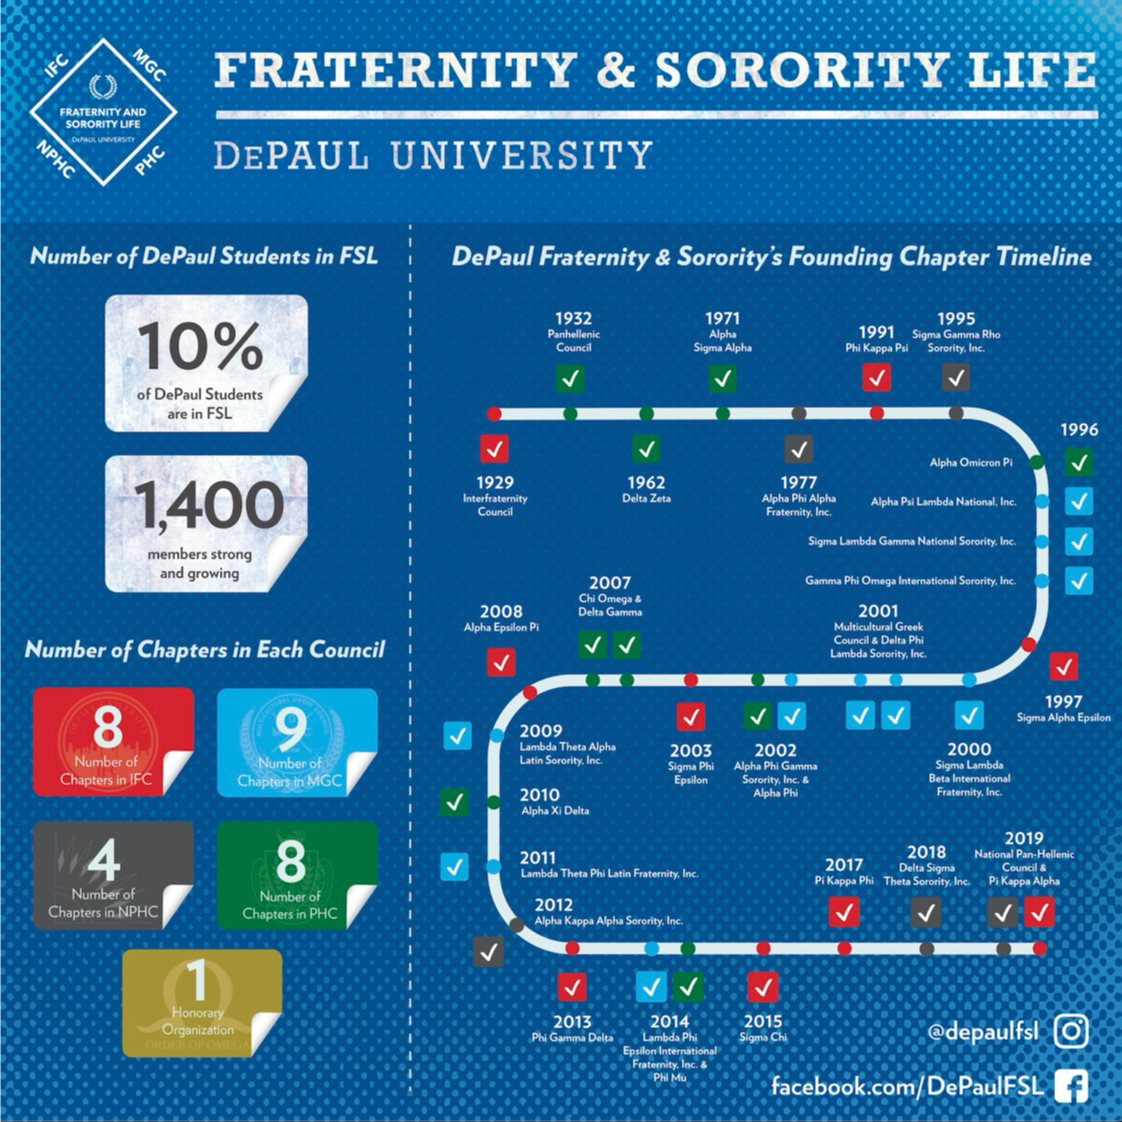 Fraternity & Sorority Life Timeline